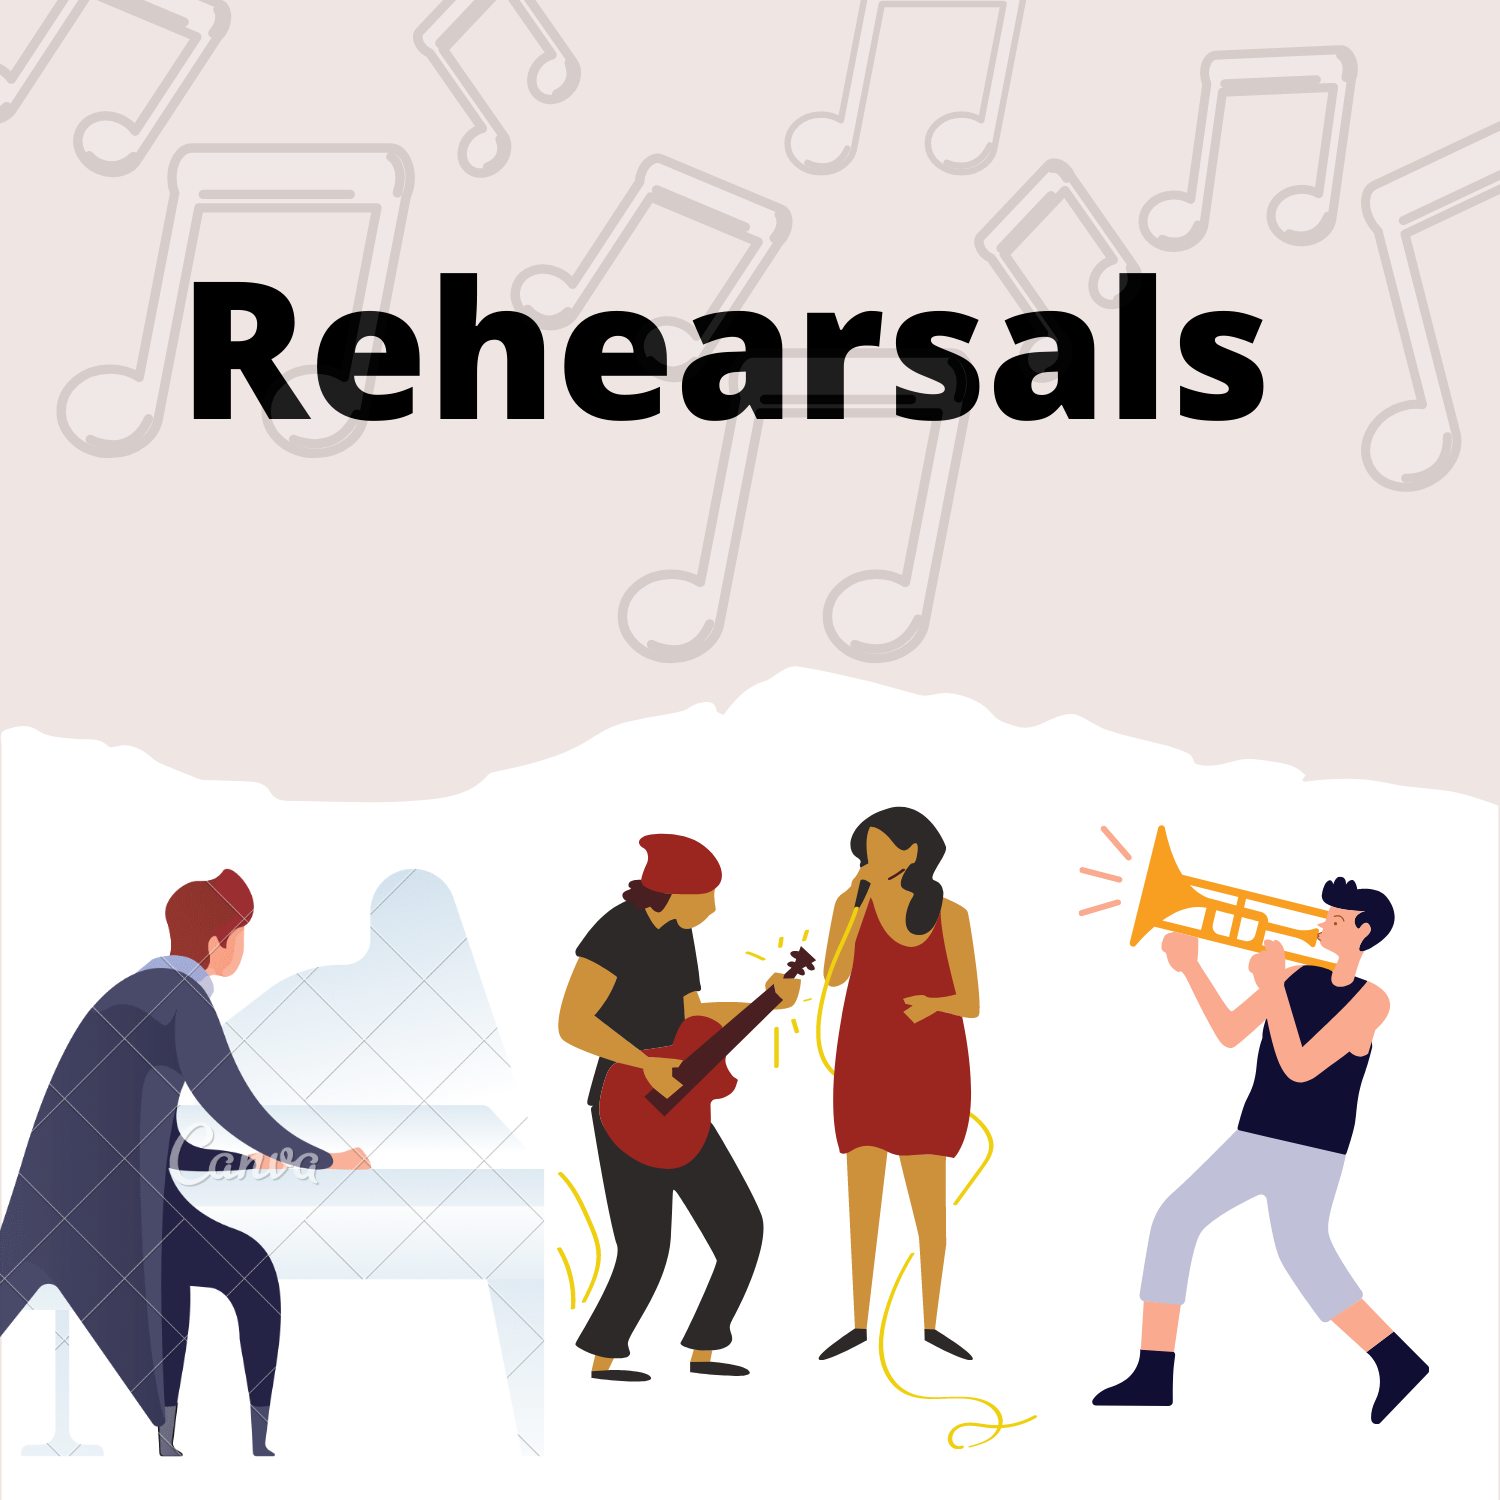 Rehearsals Icon image